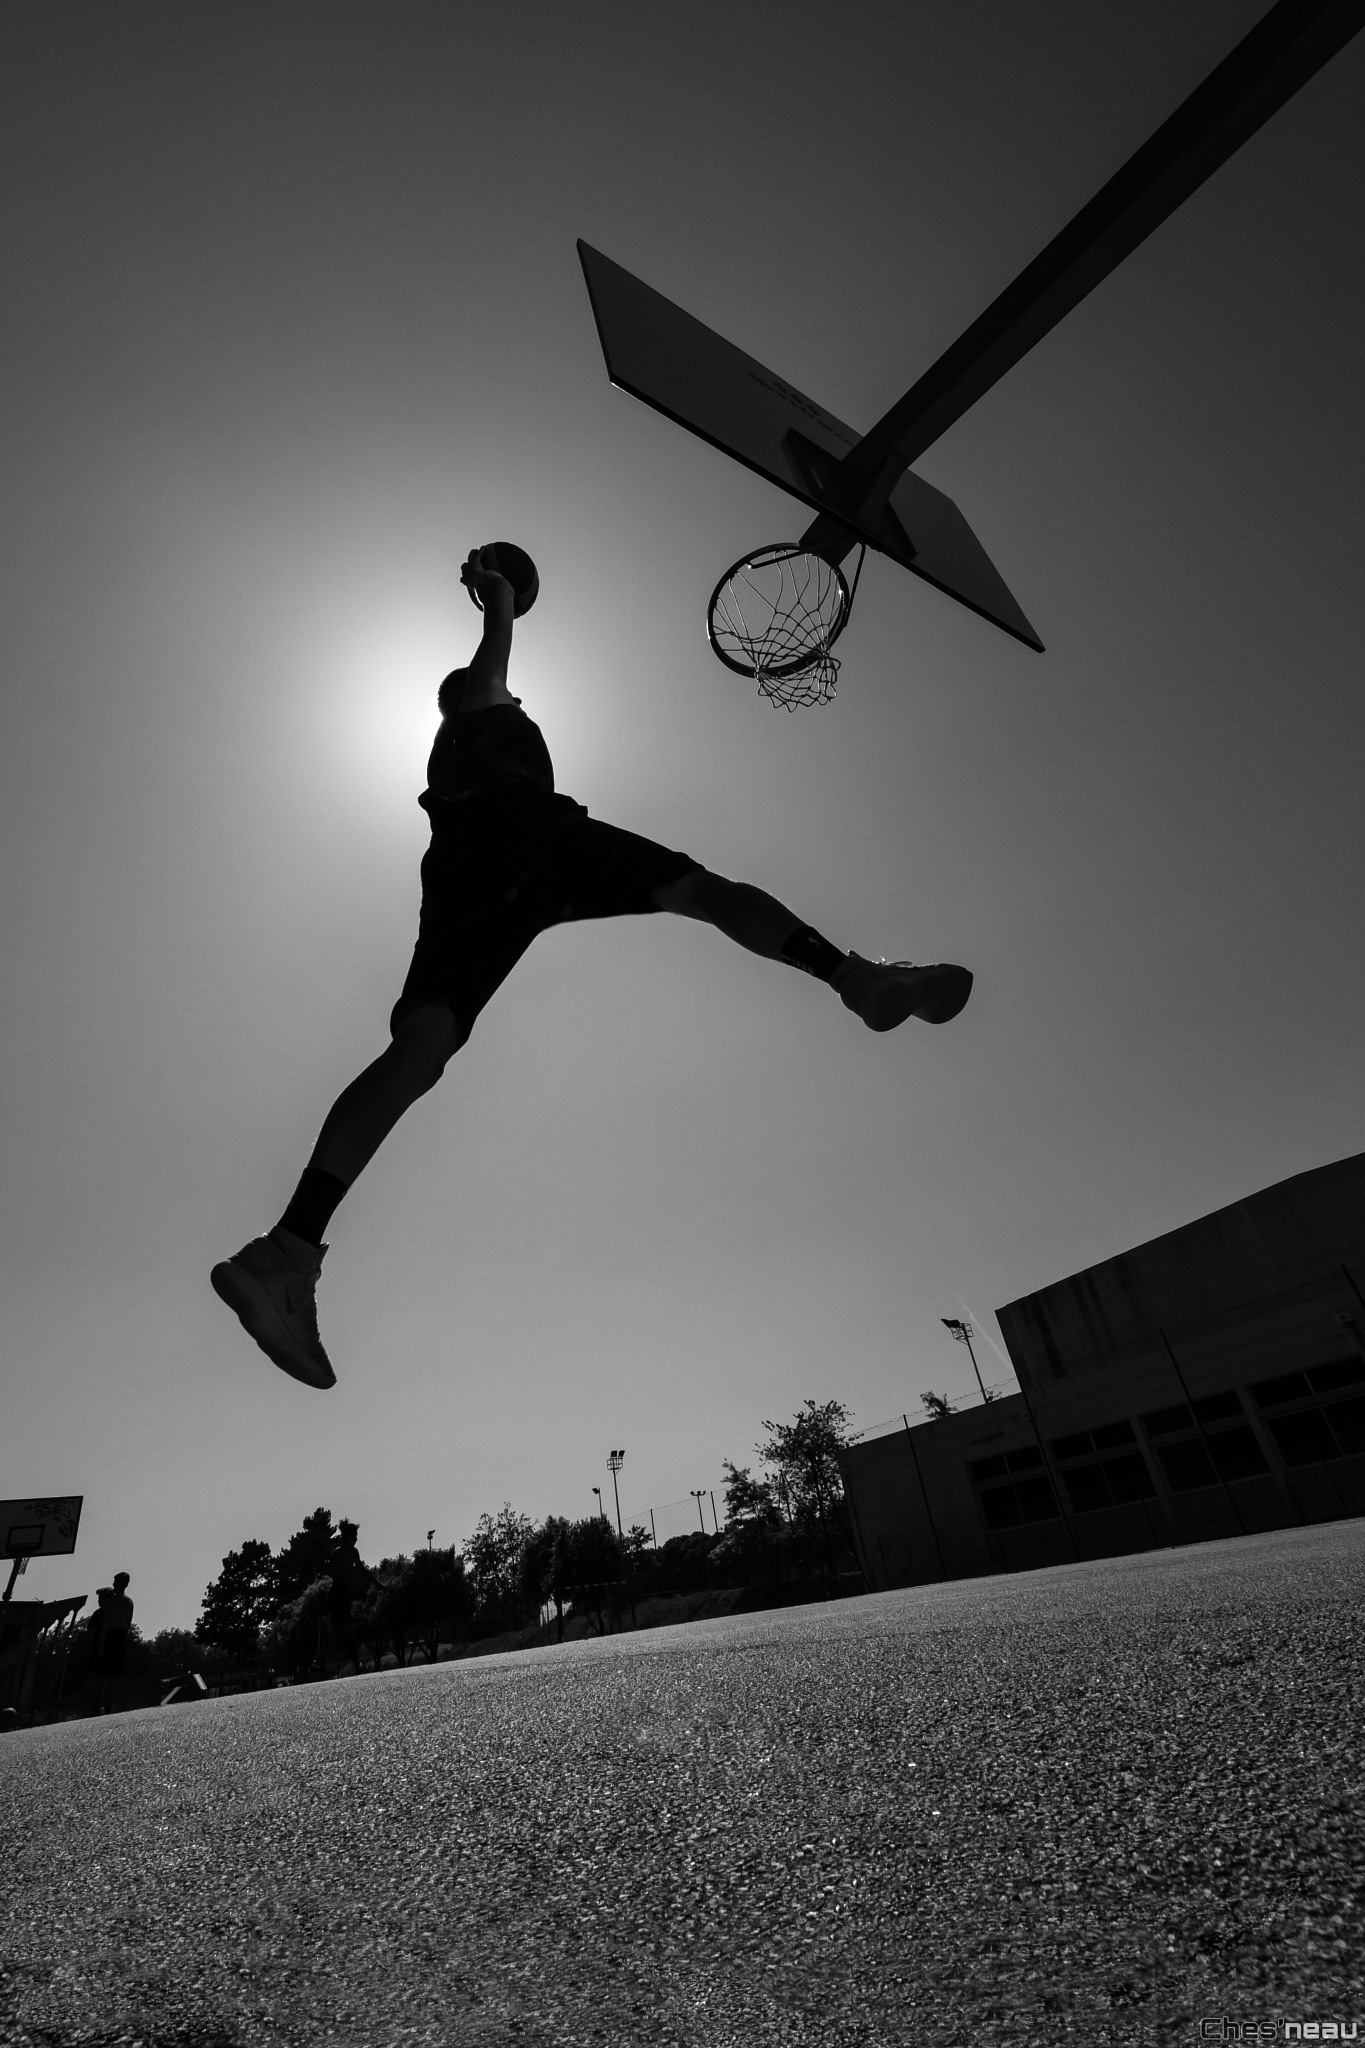 Basket by Chesneau Olivier